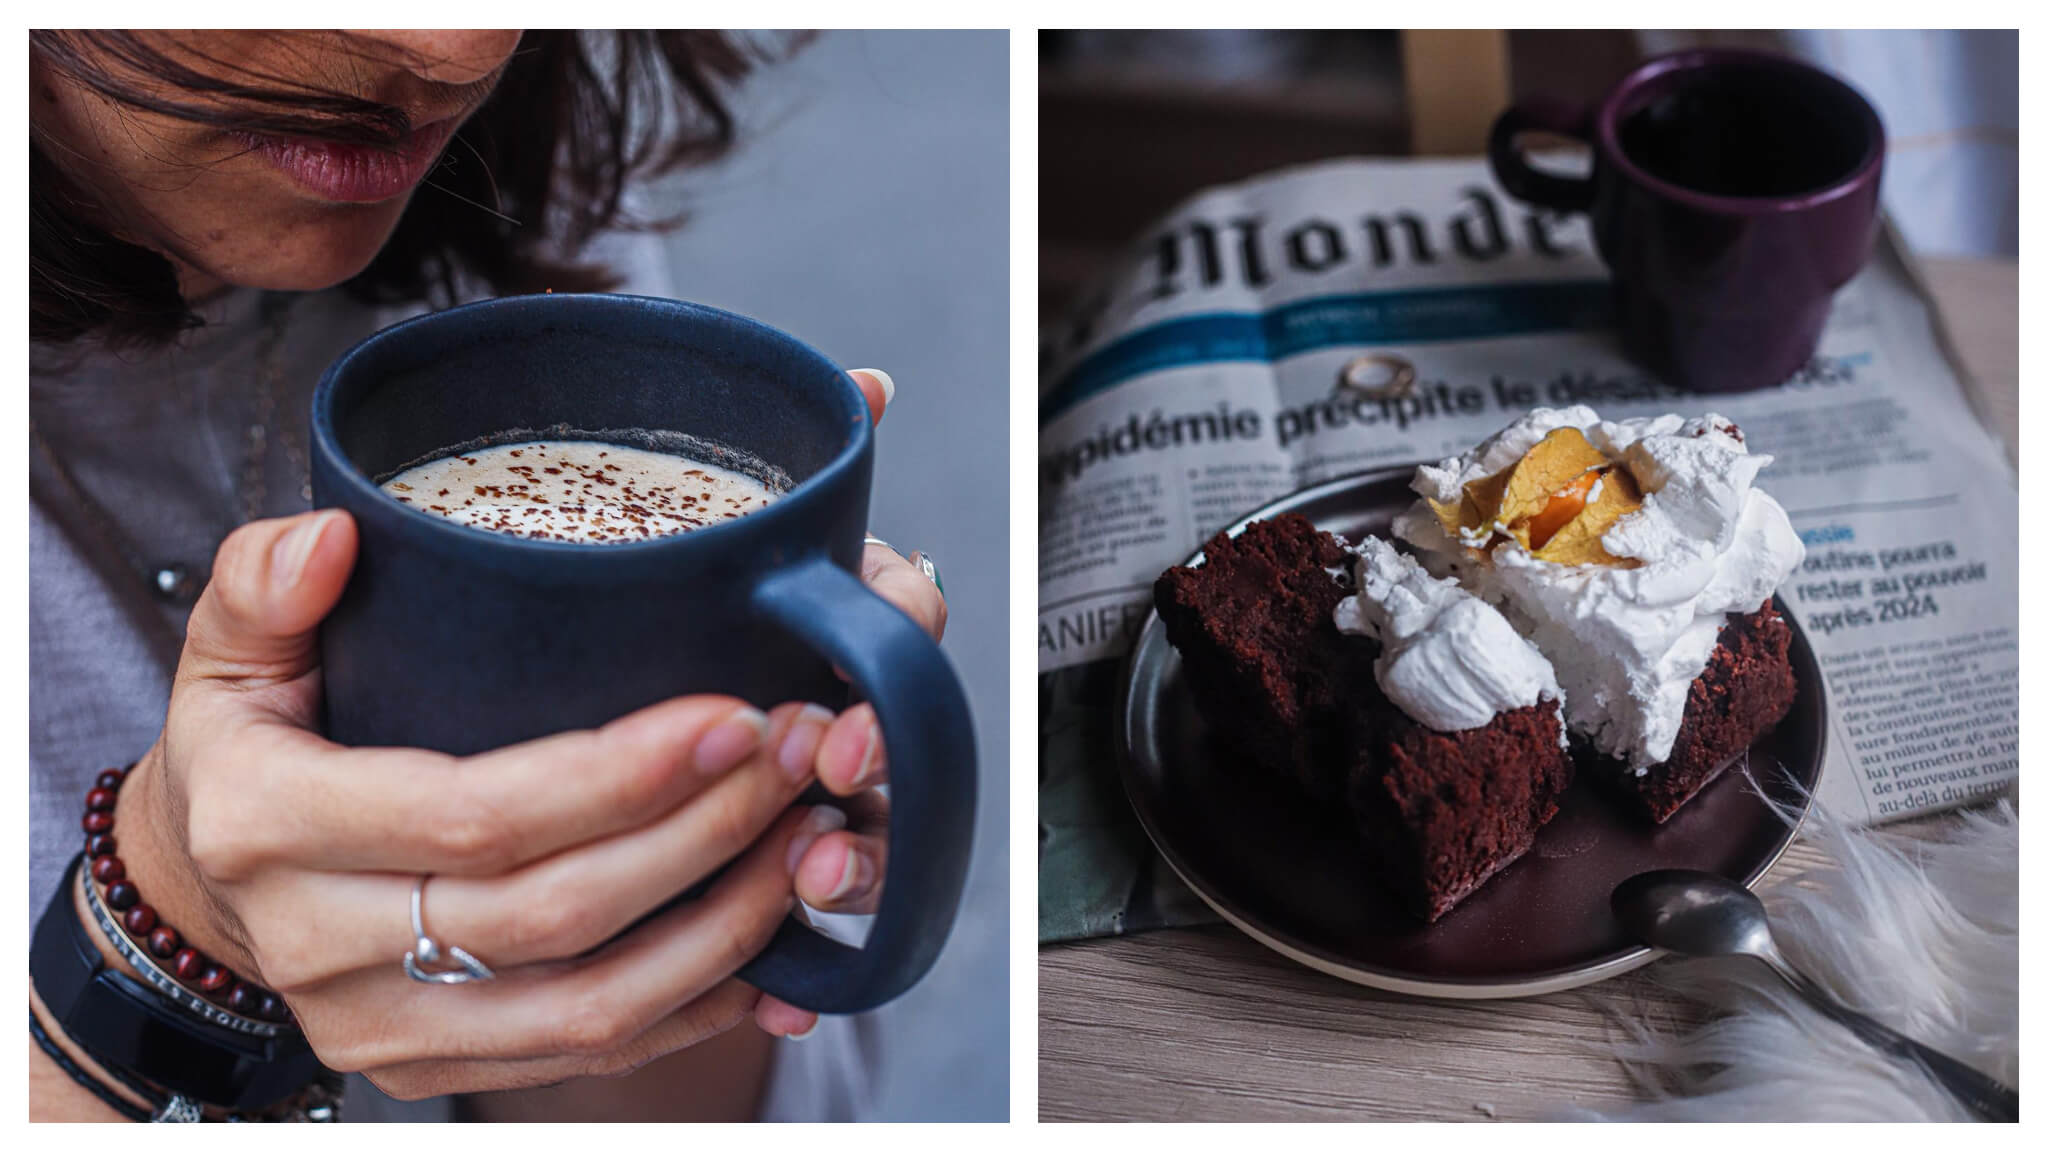 Left, a man holding a large cup of coffee. Right, a slice of chocolate cake with whipped cream and a Le Monde newspaper in the background on the table.